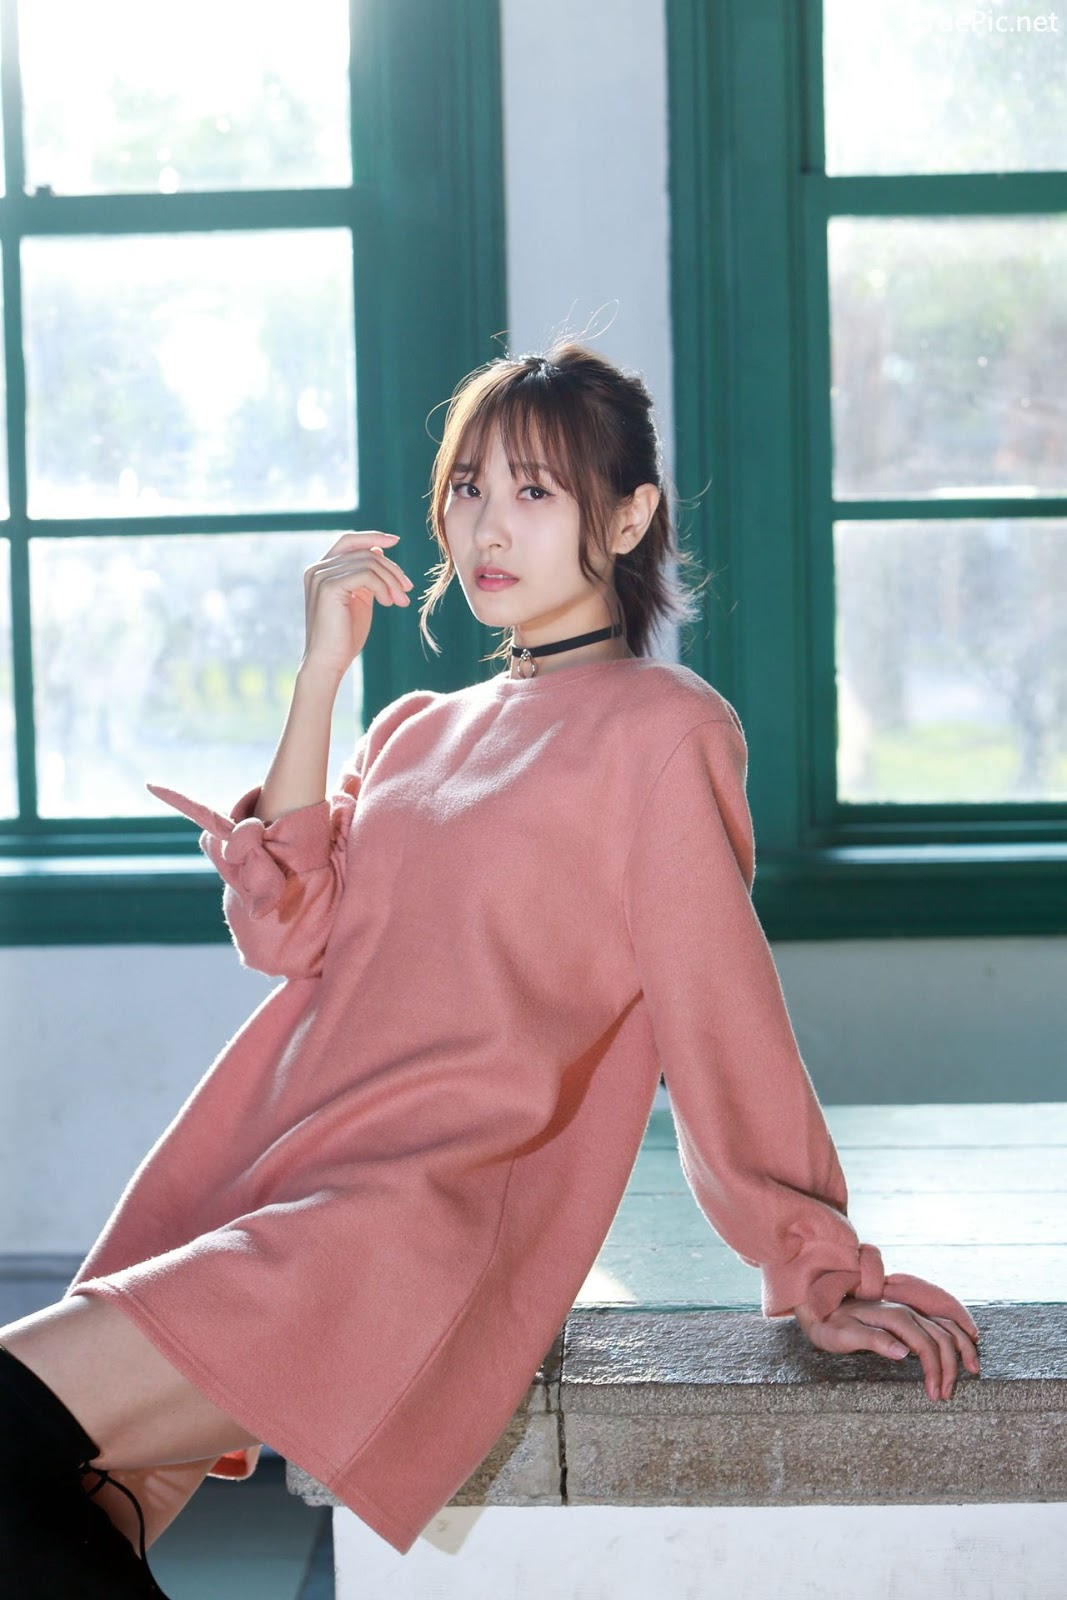 Image-Taiwanese-Model-郭思敏-Pure-And-Gorgeous-Girl-In-Pink-Sweater-Dress-TruePic.net- Picture-8